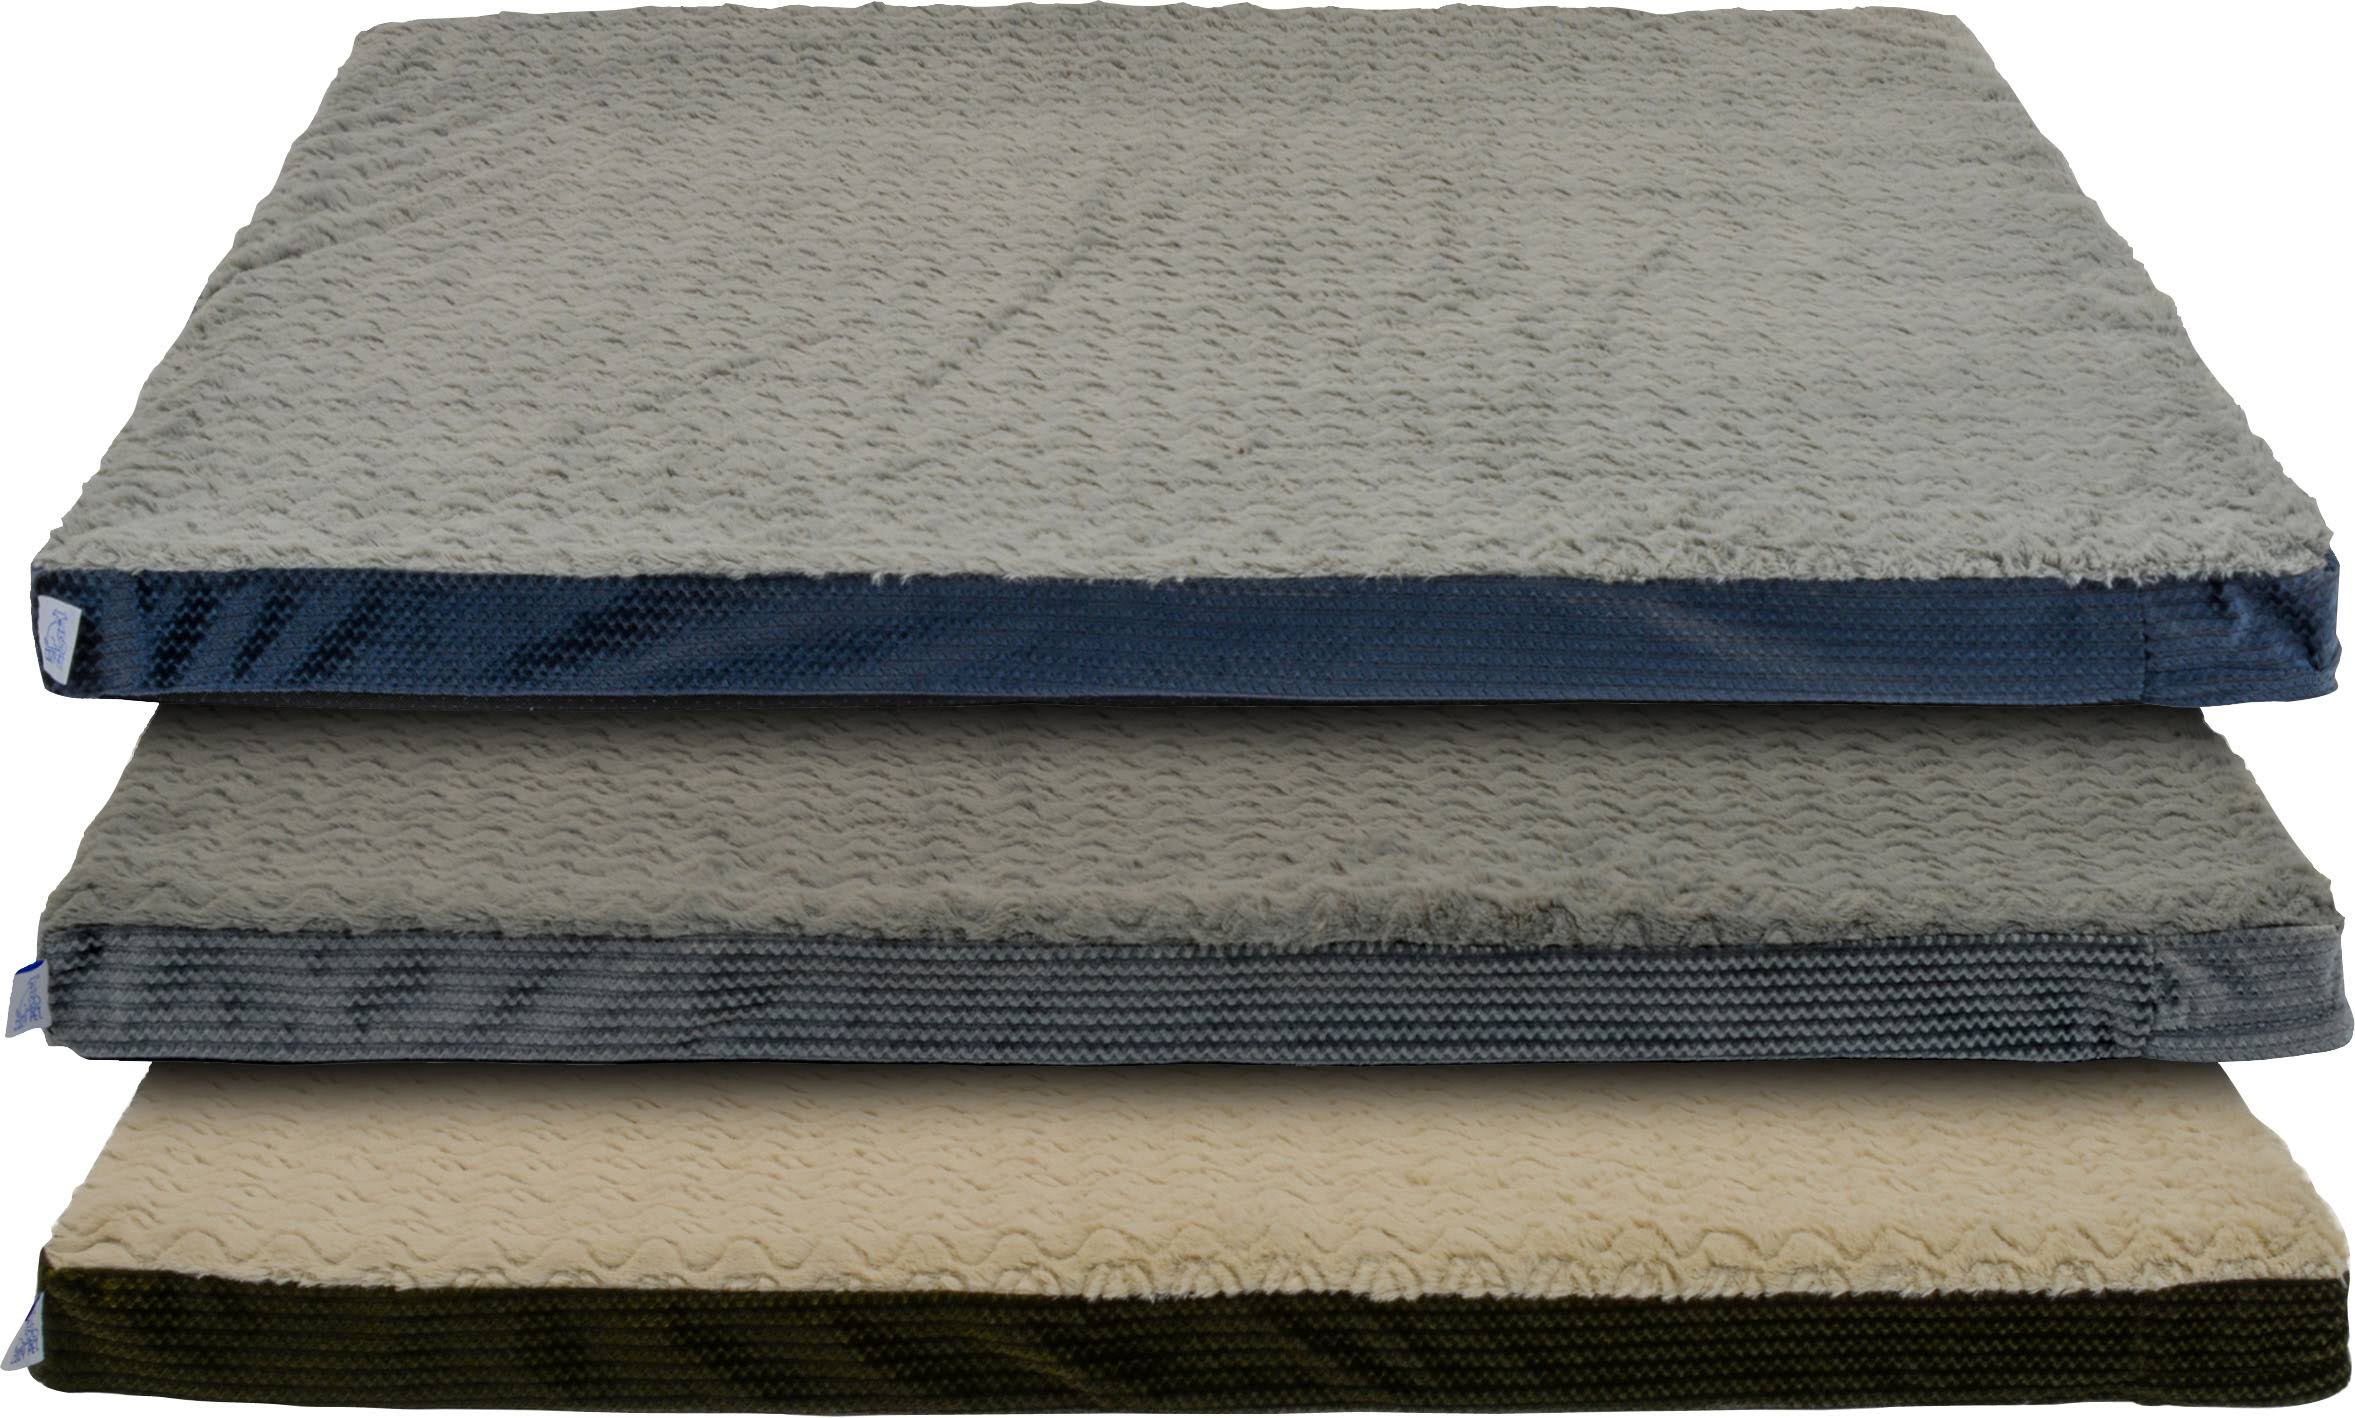 Dallas 100211692 34 x 42 in. Cozy Orthopedic Foam Rectangle Pet Bed